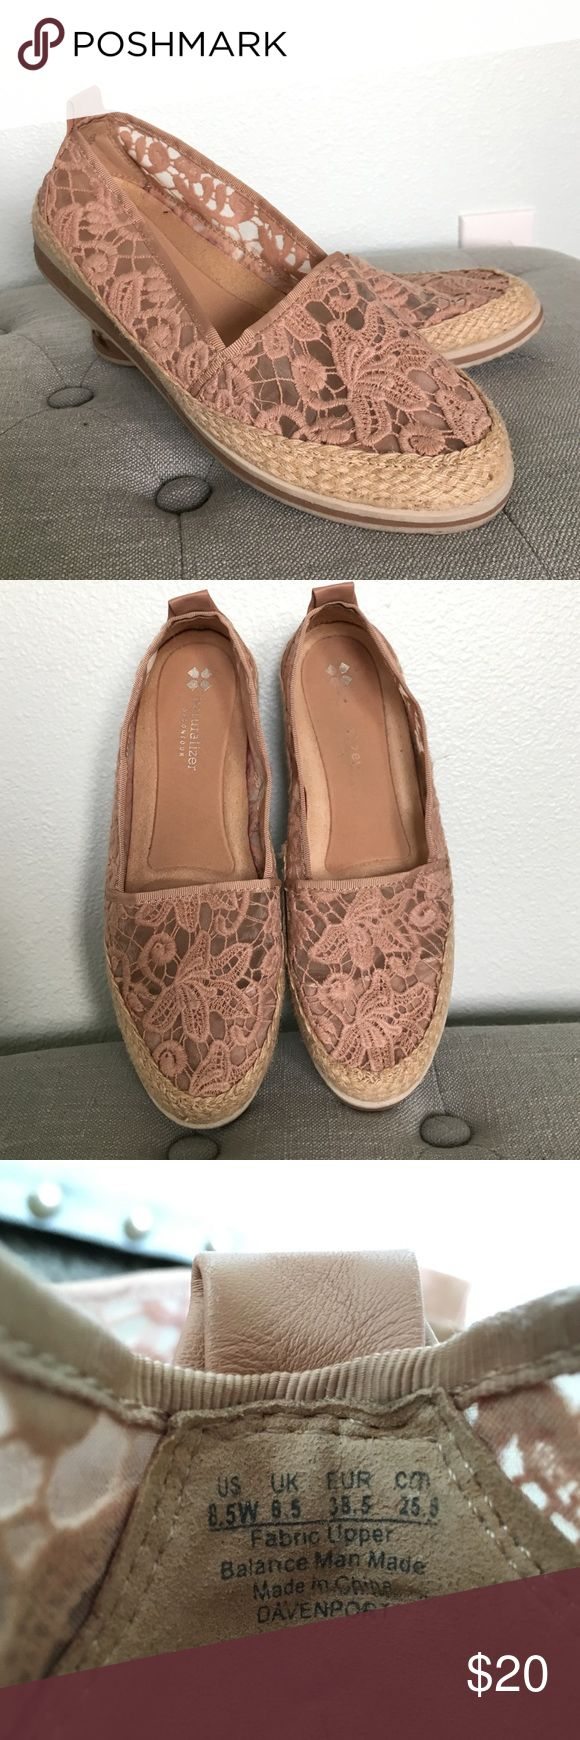 Nude Lace Espadrilles Size 8.5W.  These nude espadrilles go with anything!  Very comfortable.  Worn once or twice, have a great small scuffs on the rubber soles. Naturalizer Shoes Espadrilles